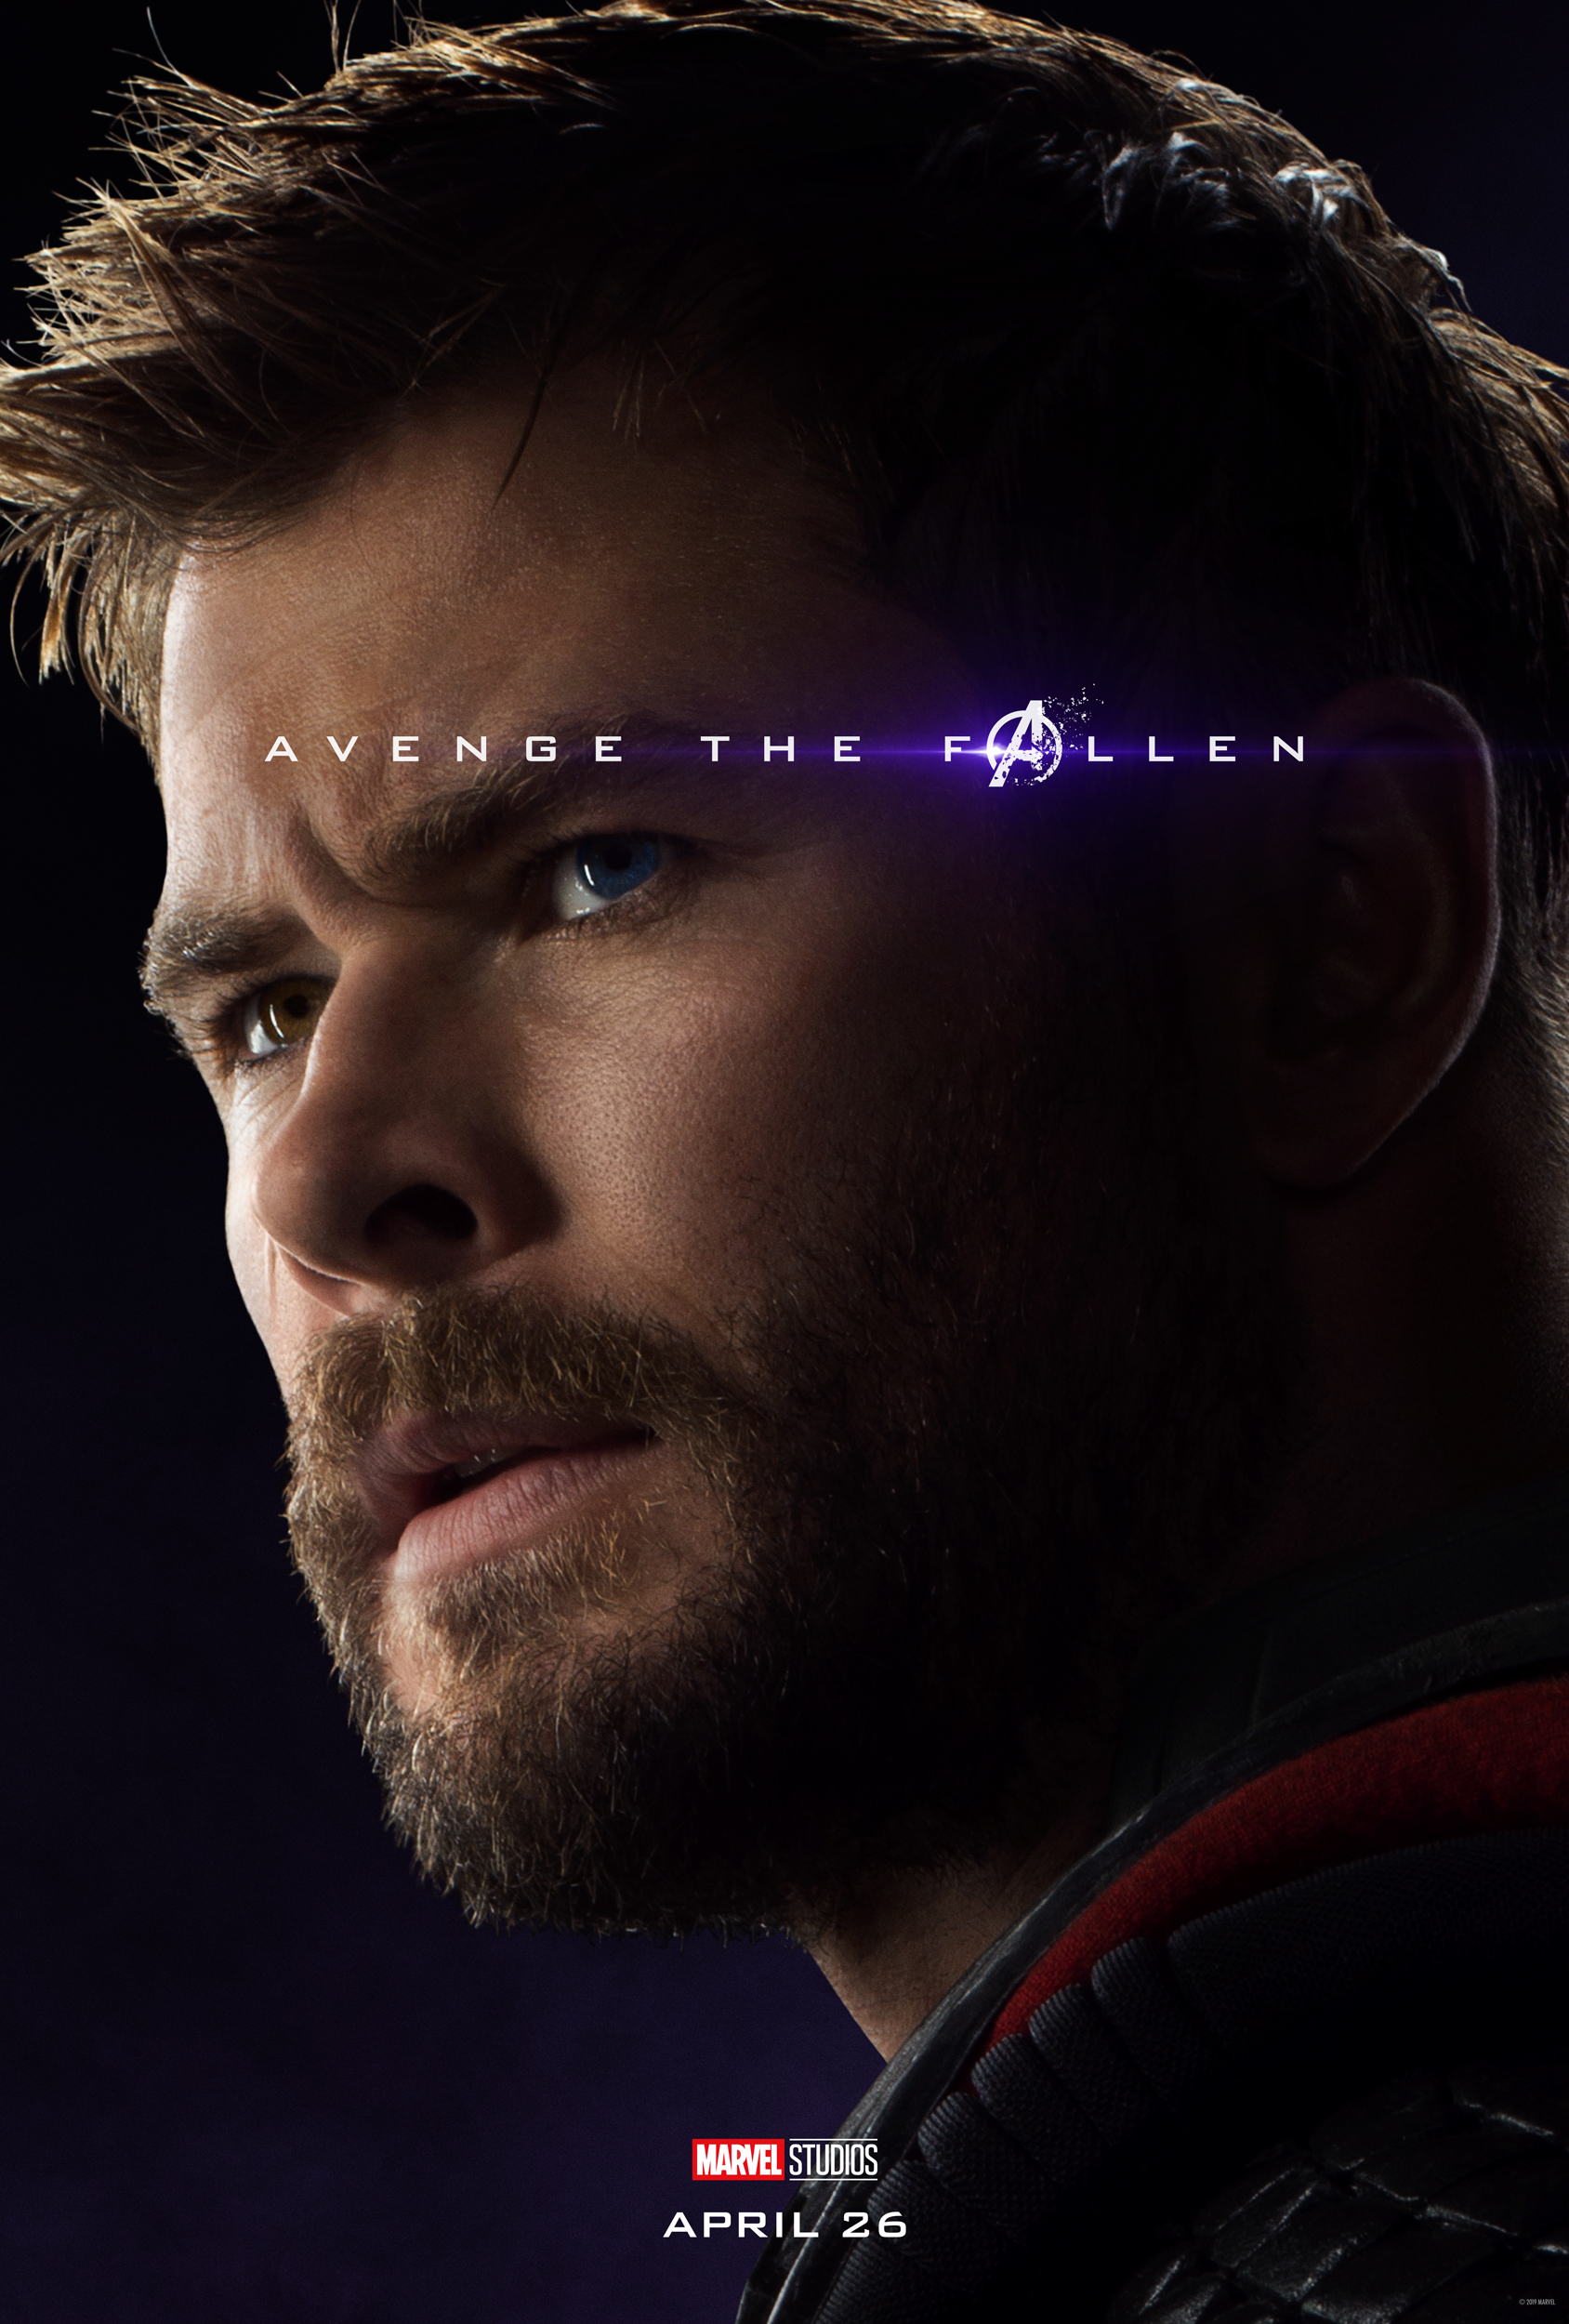 New Avenge The Fallen Character Posters For Avengers Endgame